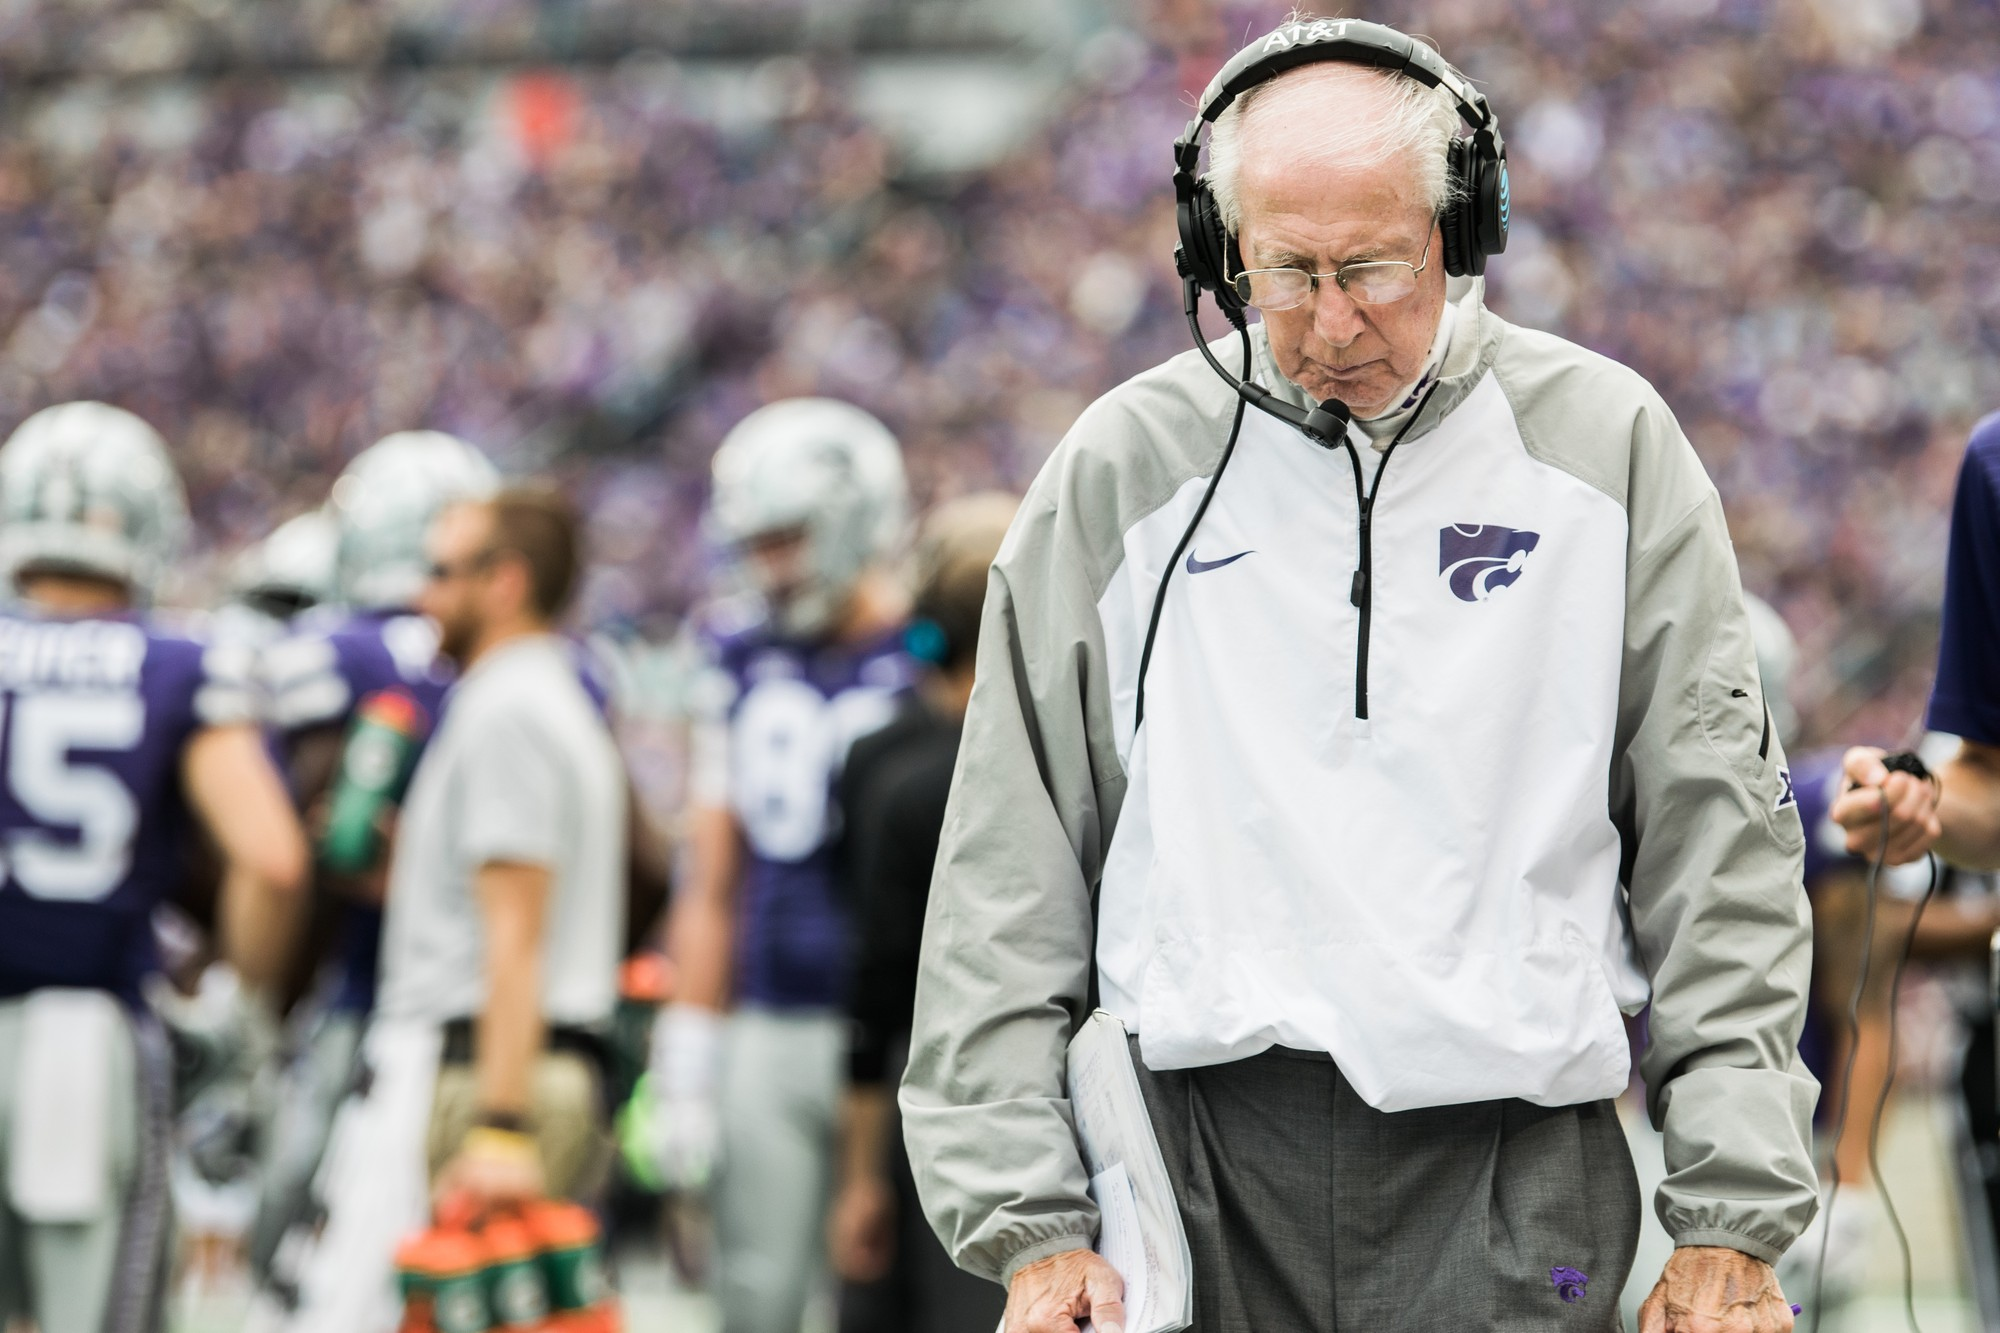 Coach Bill Snyder's 22-year-old grandson found dead in Manhattan